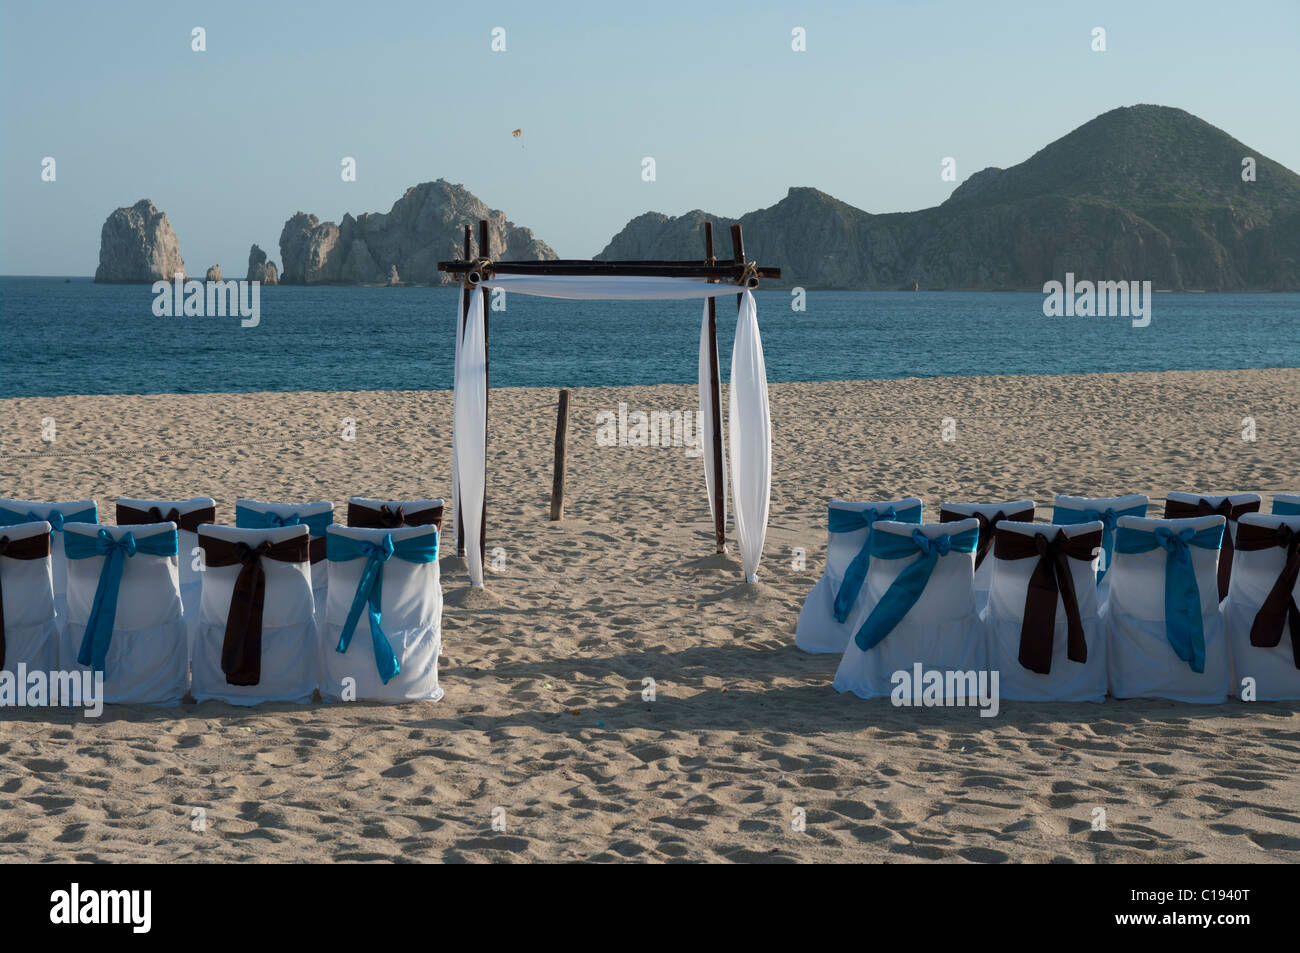 Wedding ceremony chair - A Deserted Beach Set Up For A Wedding Ceremony The Chair Covers Are White With